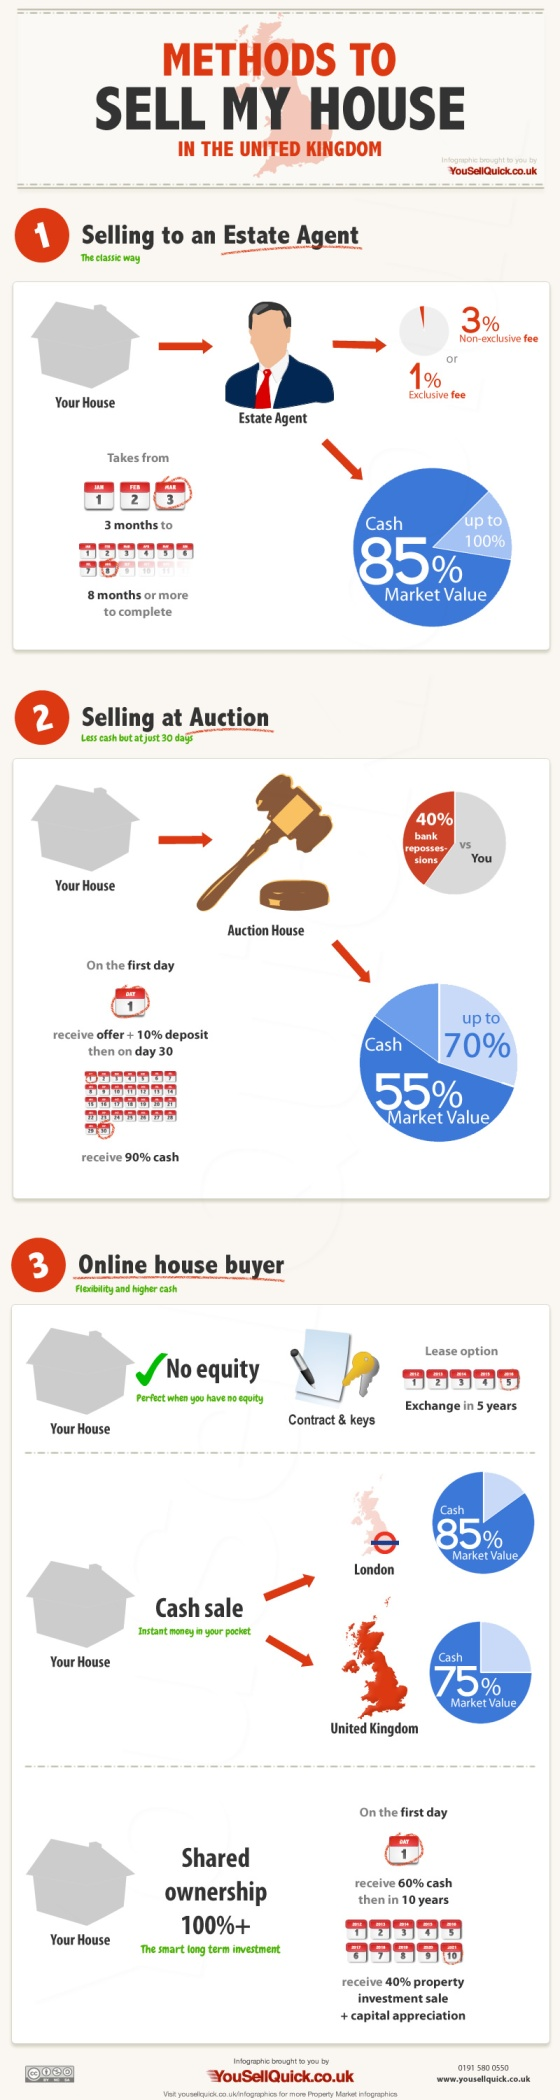 Sell My House in the UK Infographic